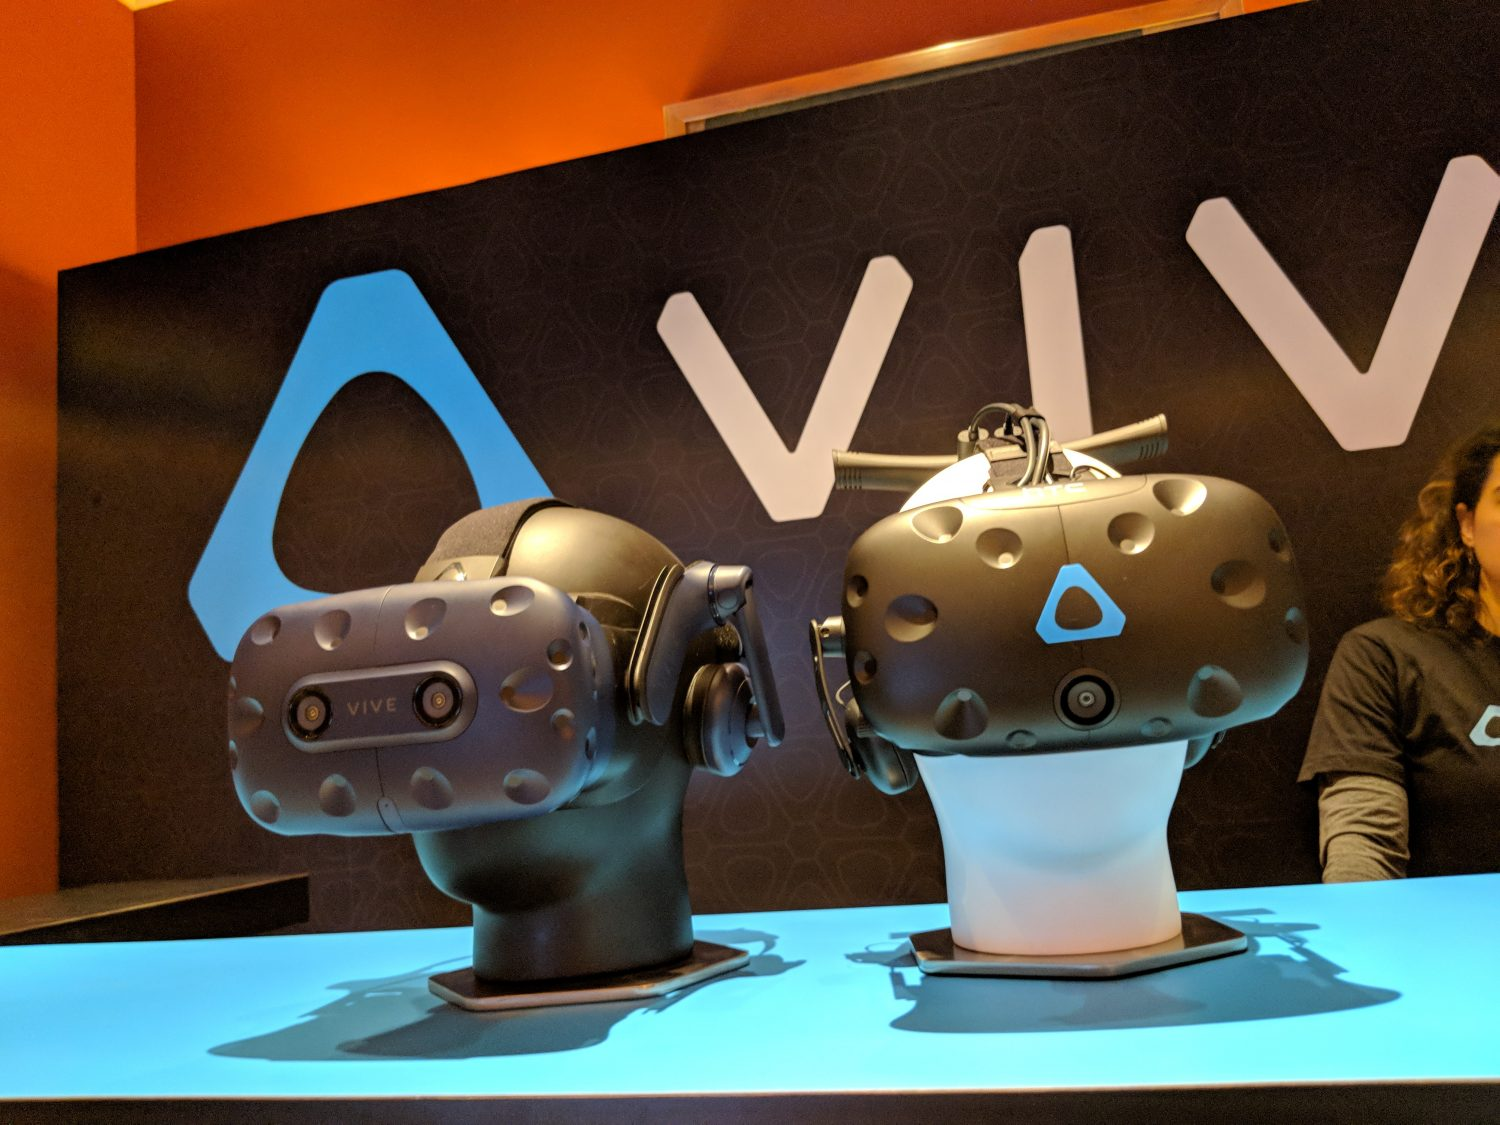 htc vive headsets line up